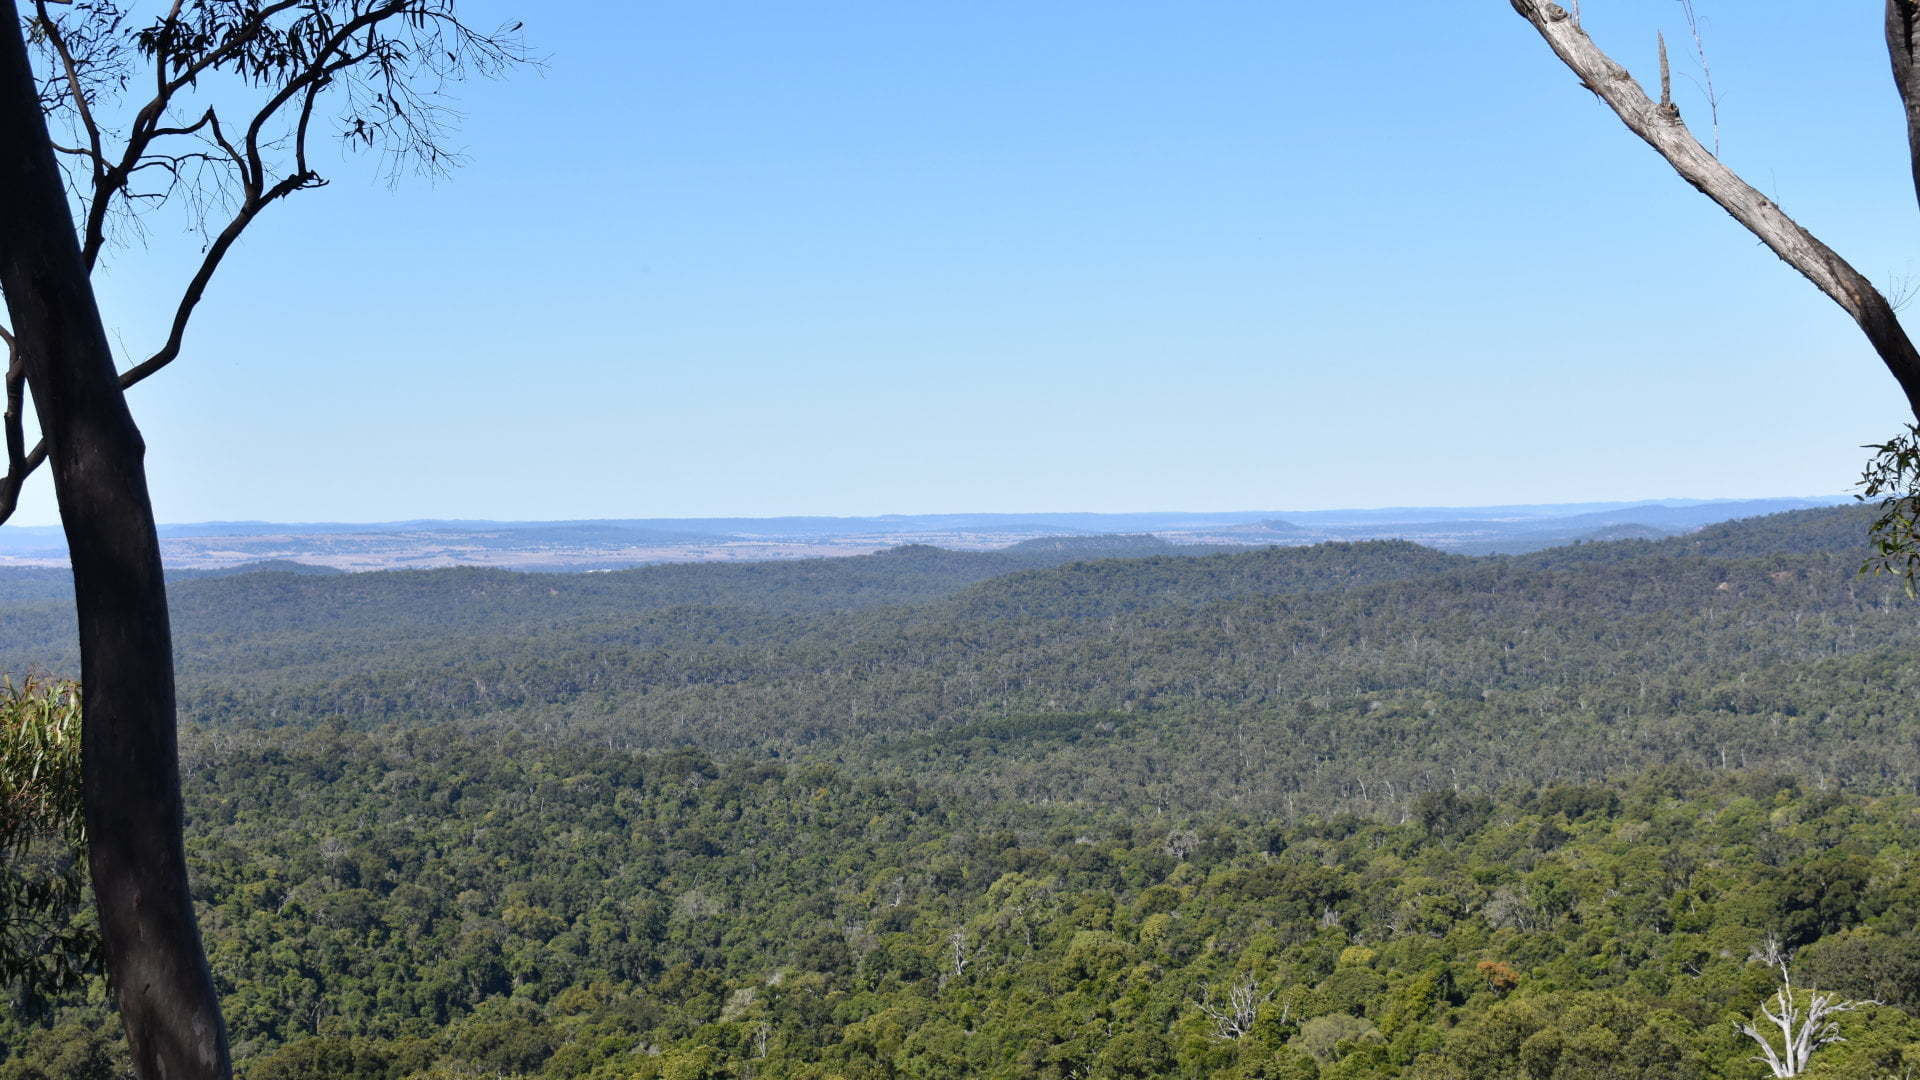 View from Hurdle Gully Lookout in Coominglah State Forest